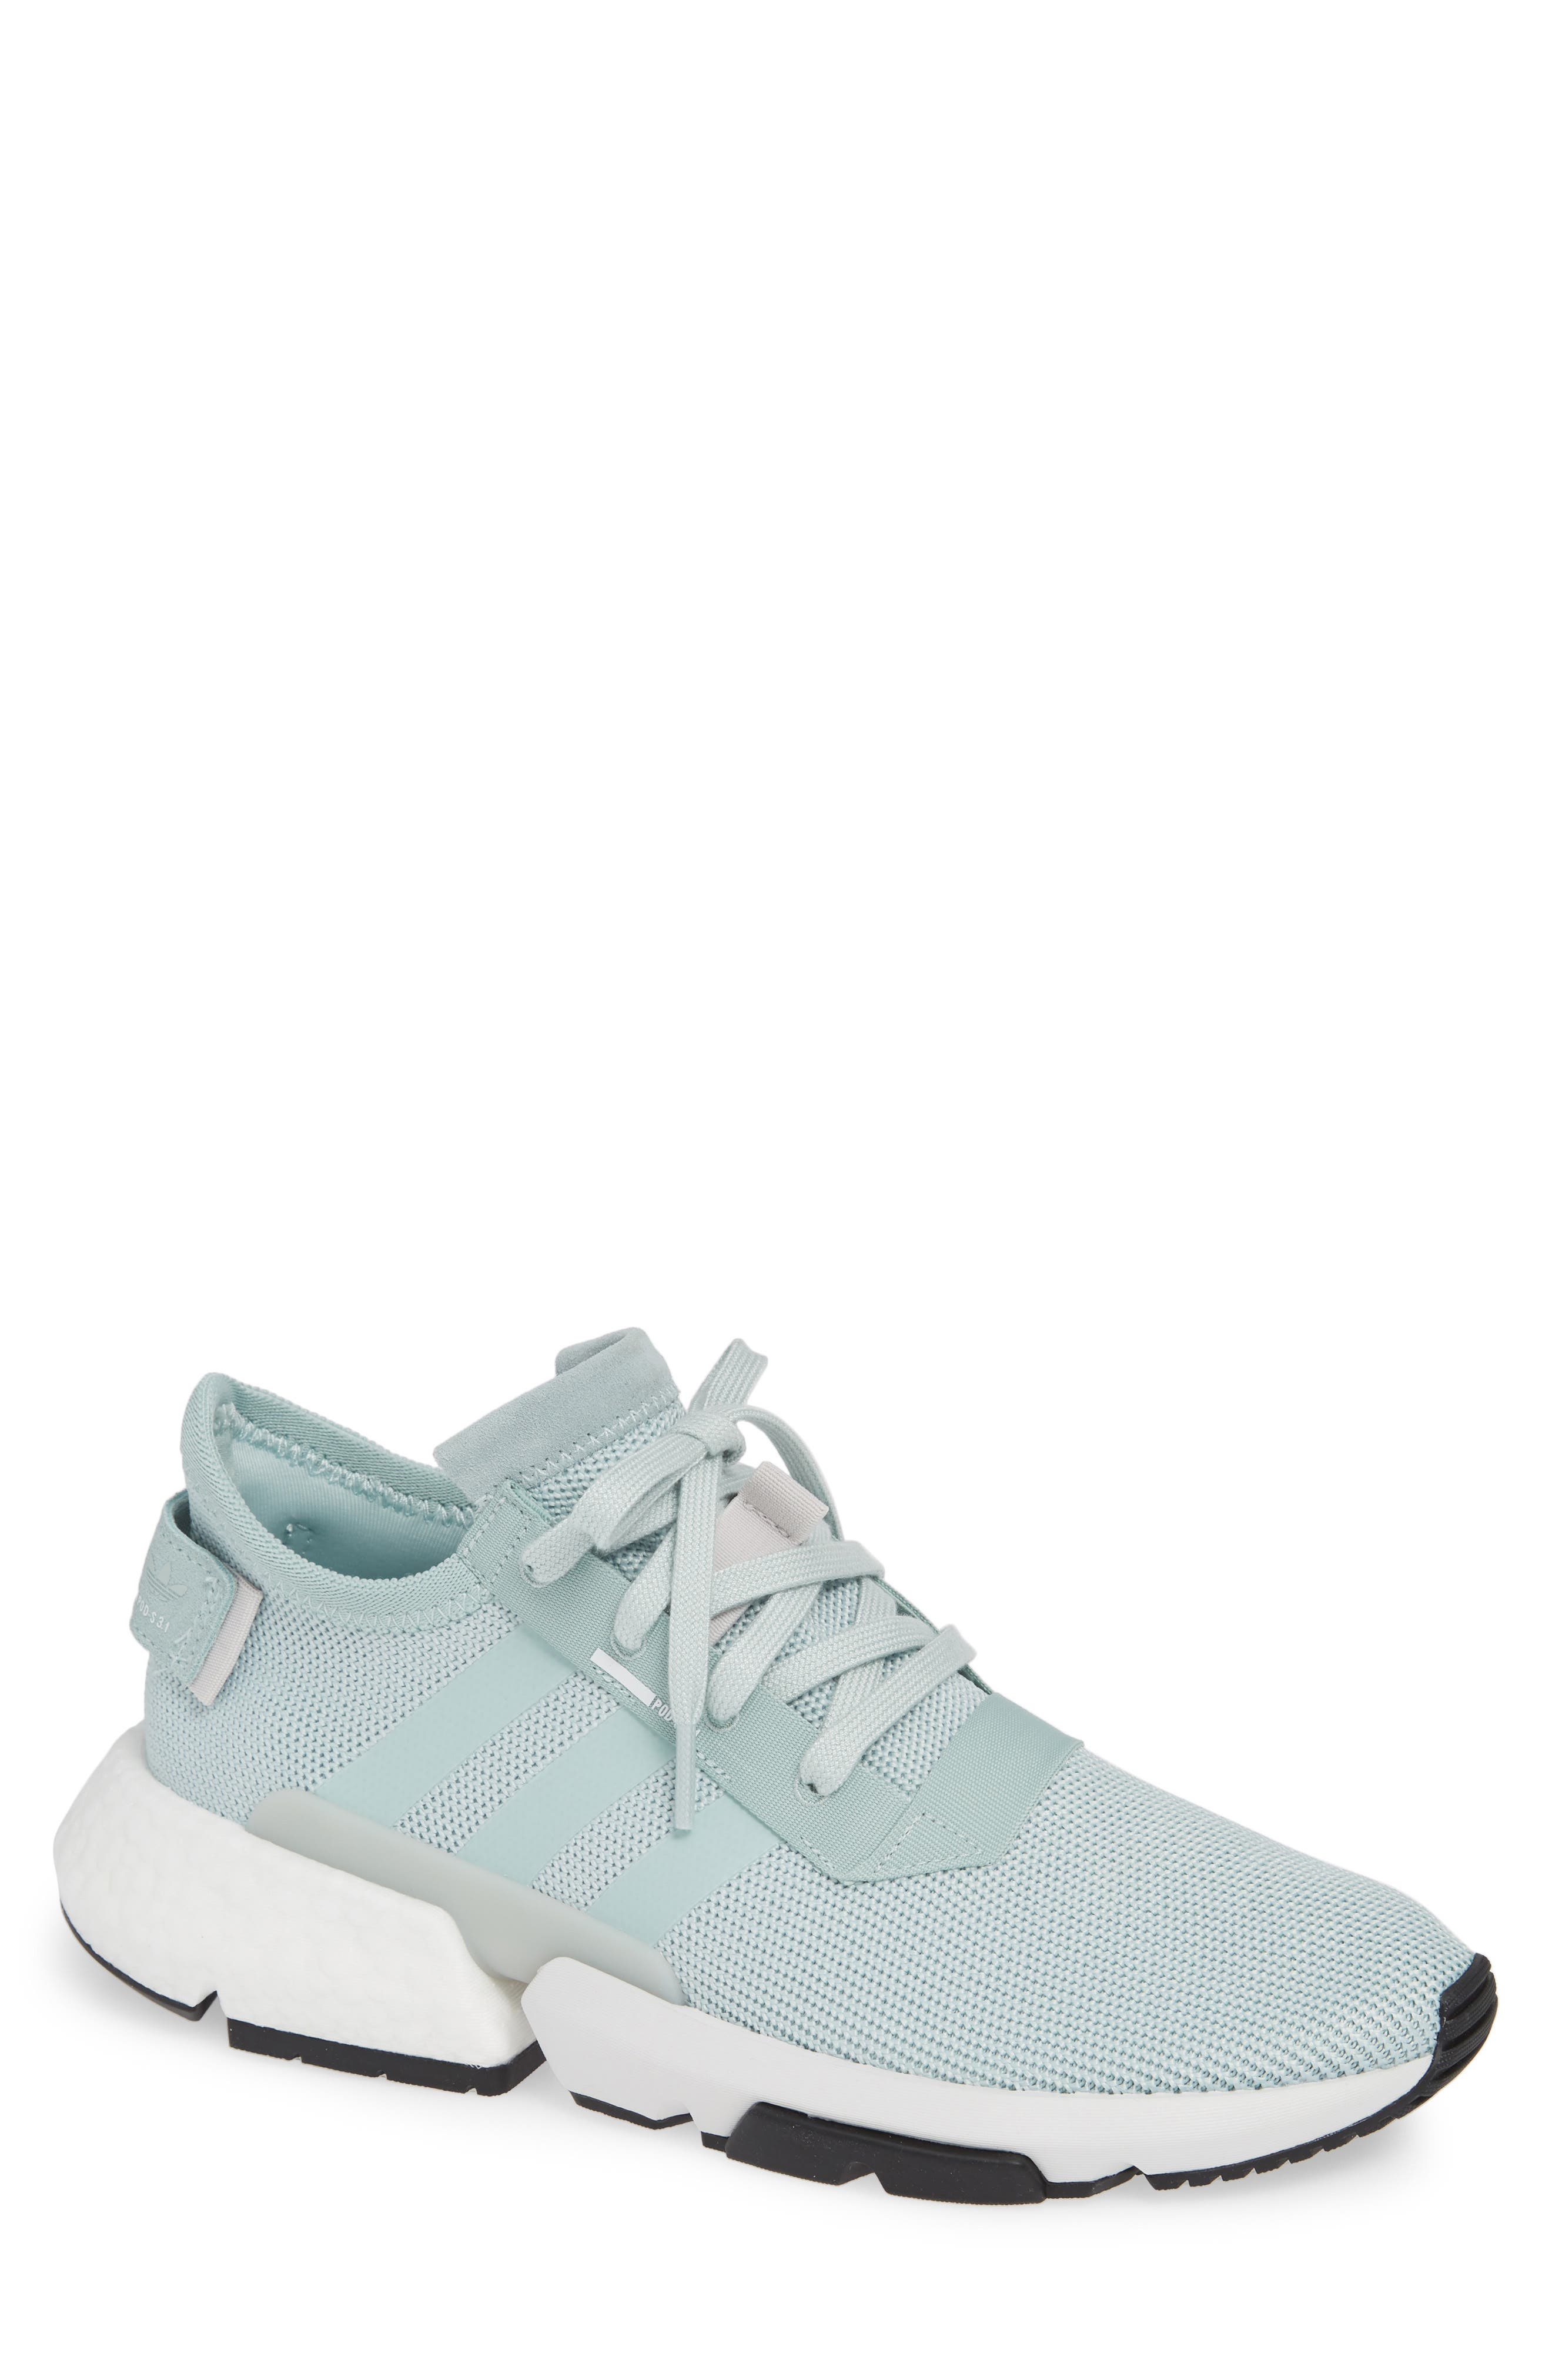 P.O.D.S3.1 Sneaker,                             Main thumbnail 1, color,                             VAPOR GREEN / GREY